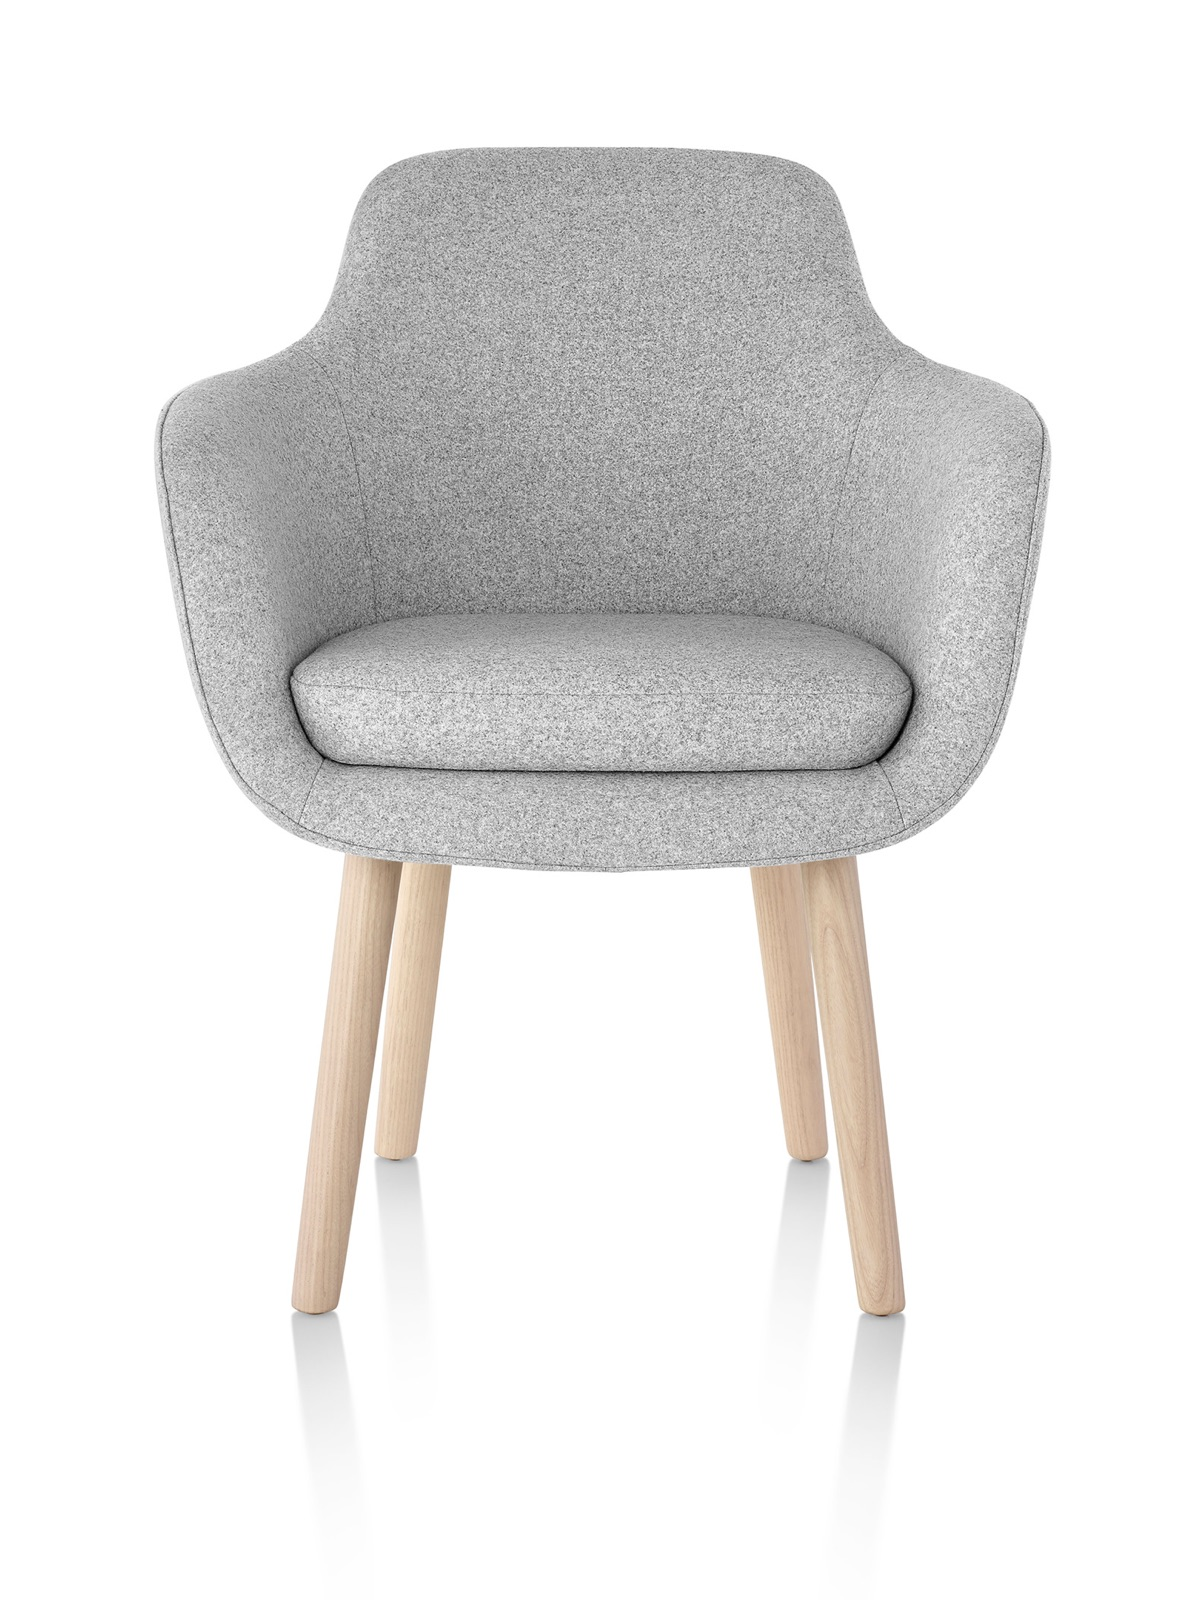 A light gray Saiba Side Chair, featuring an upholstered bucket seat and wood legs, viewed from the front.